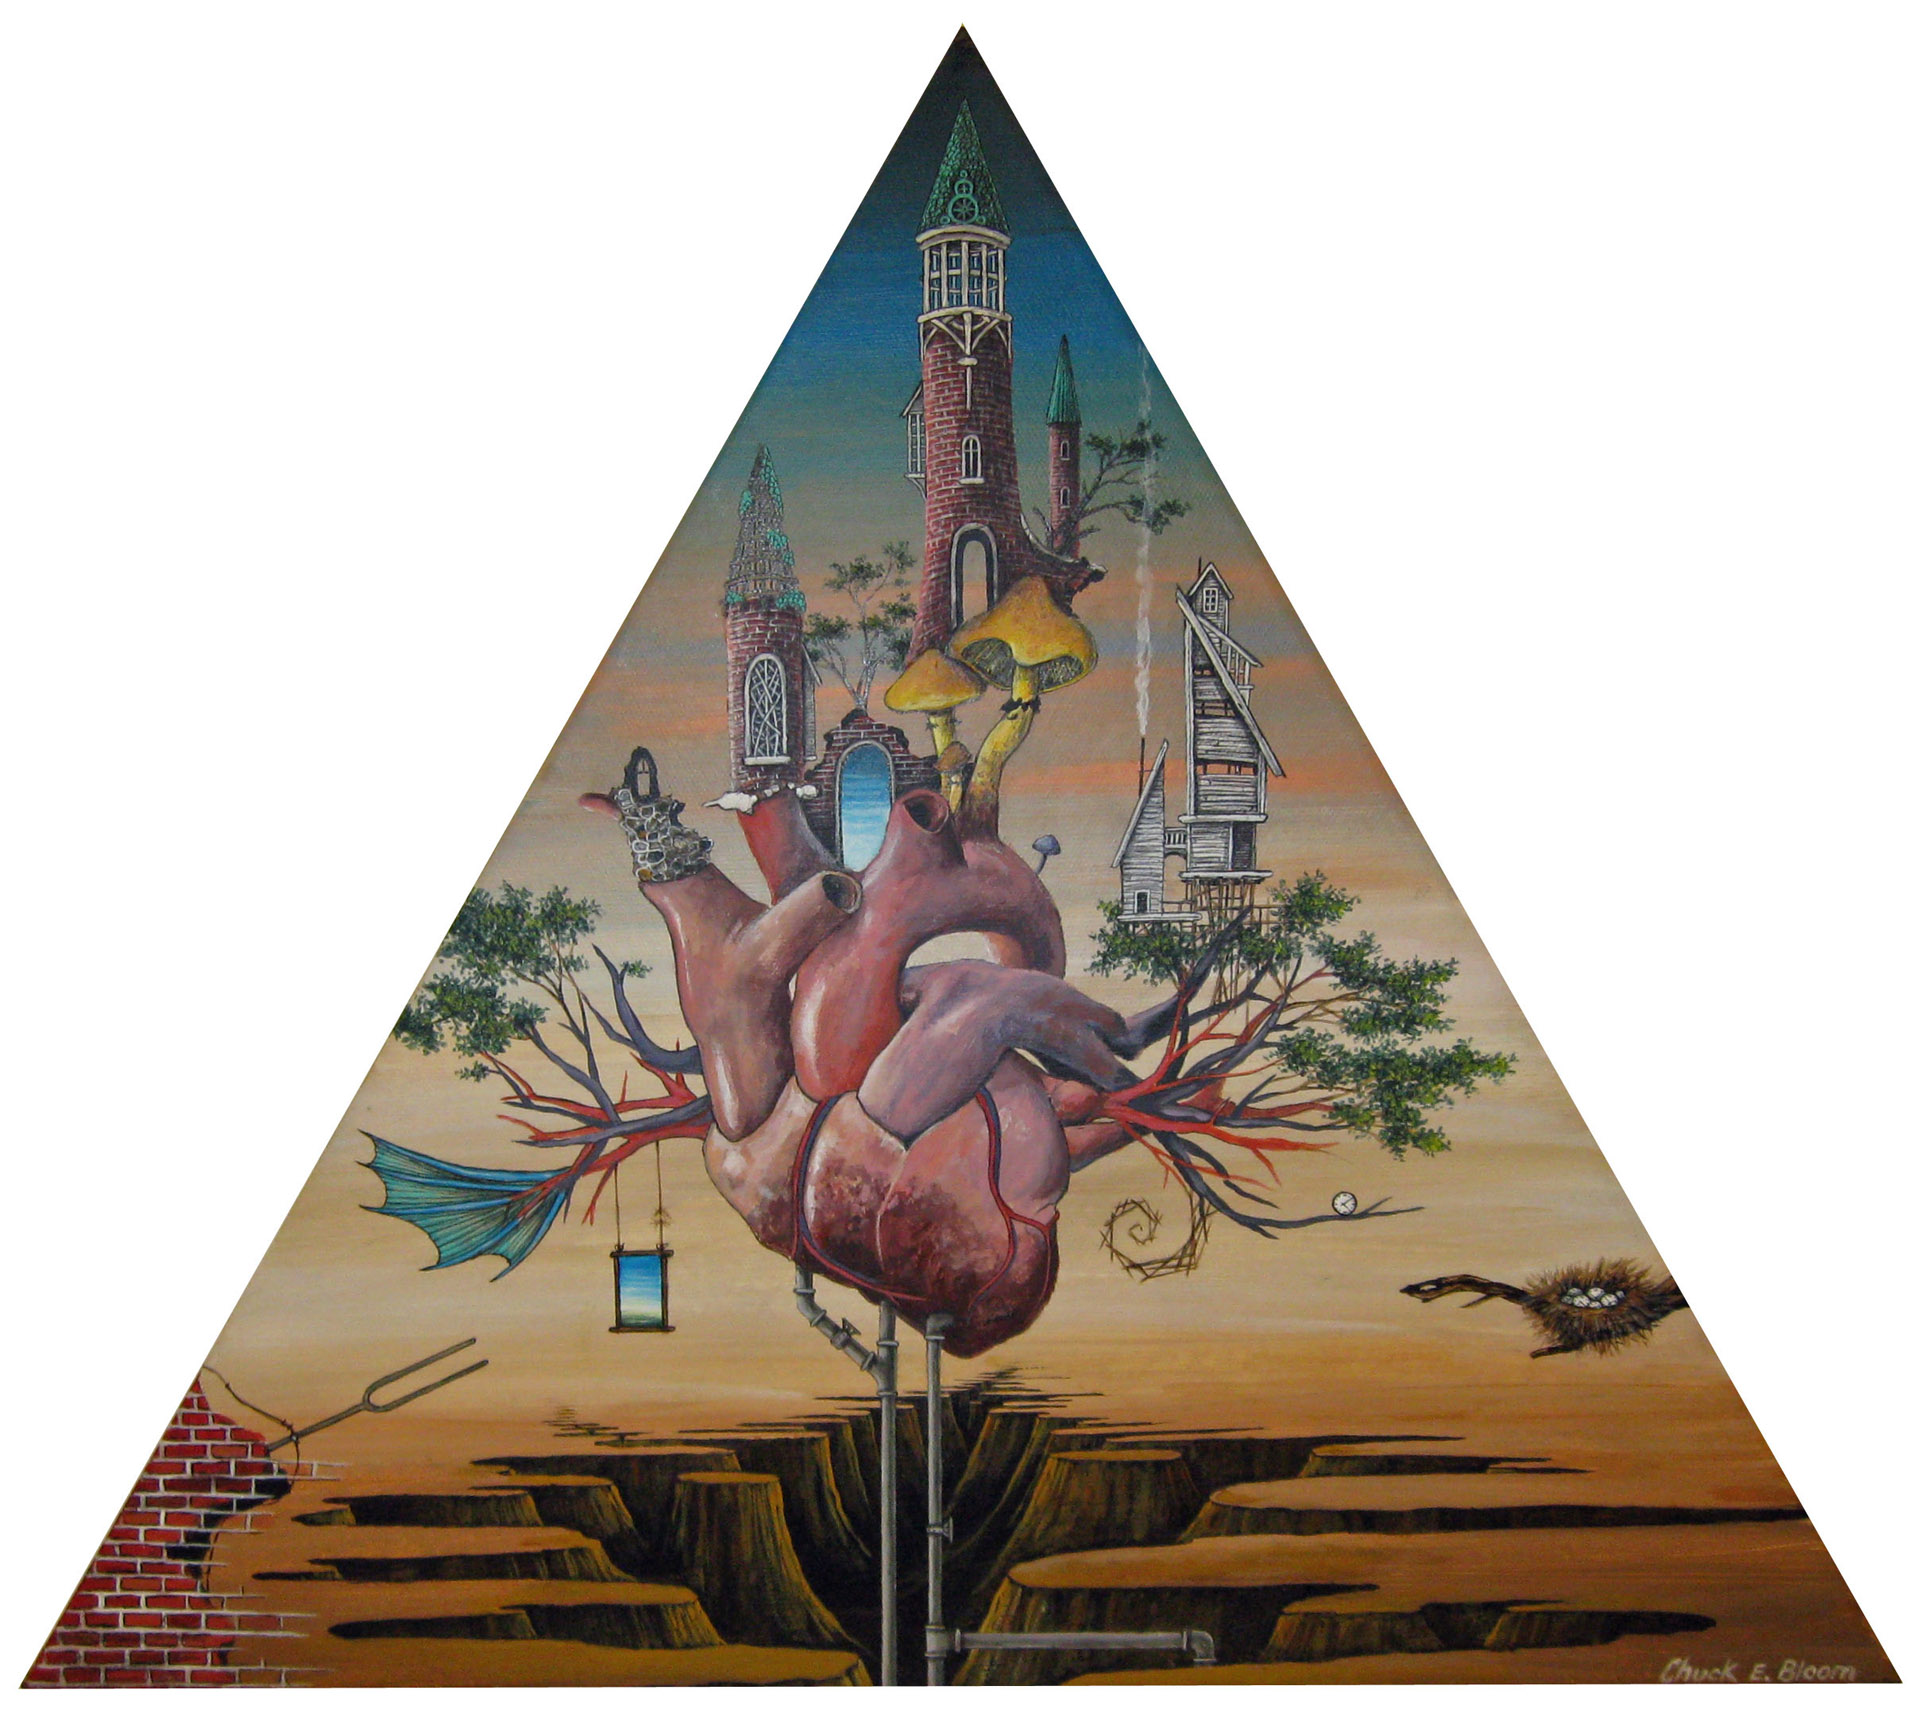 Chuck Bloom, Bizarre Love Triangle, acrylic